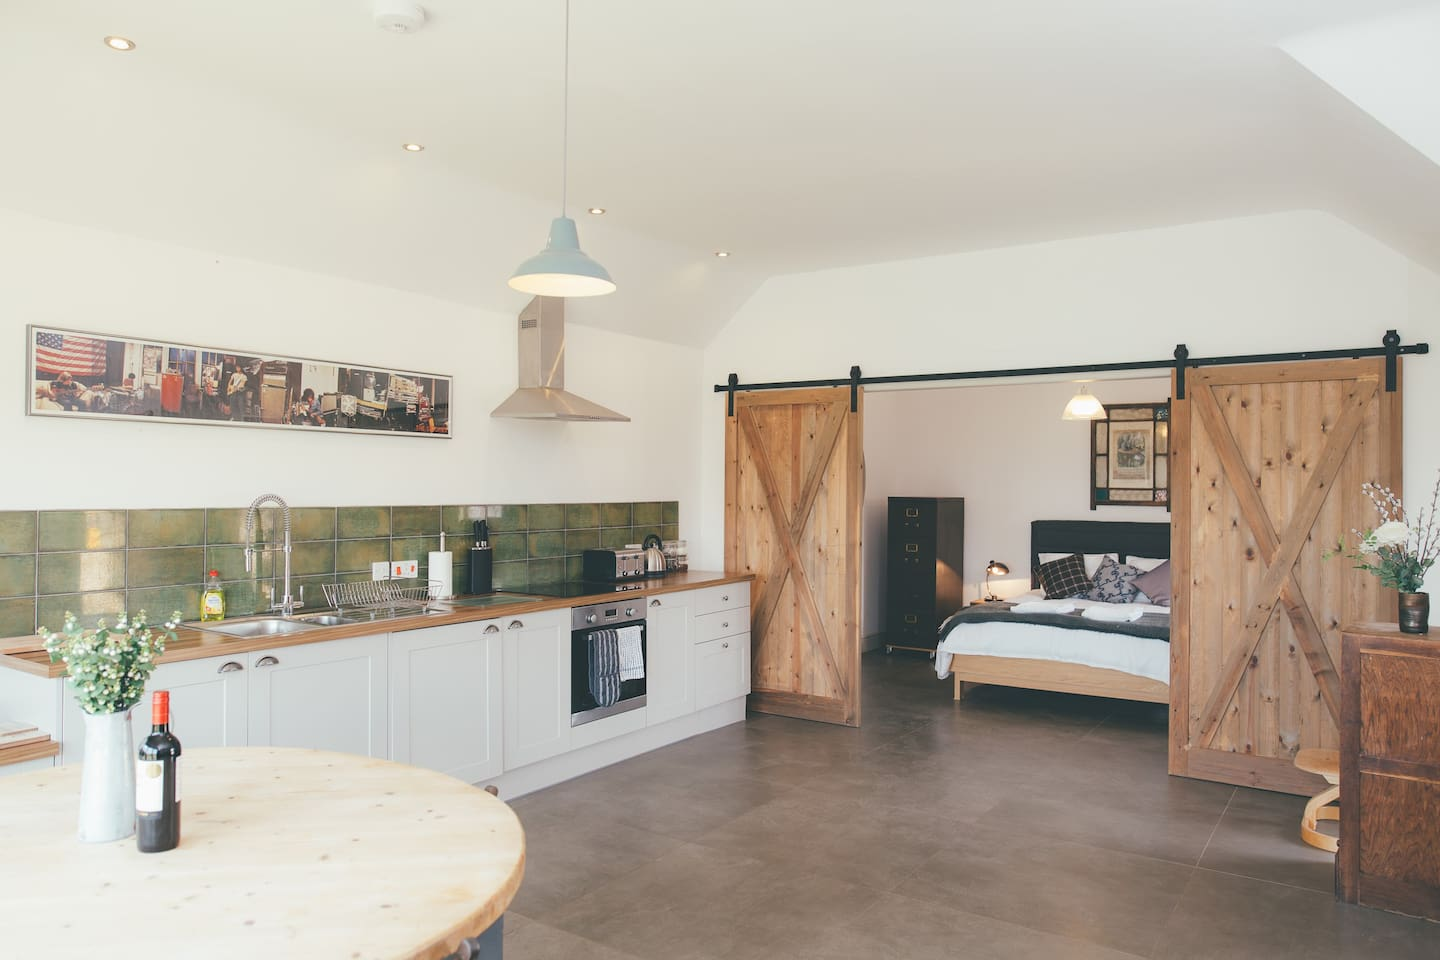 The kitchen and master bedroom in Alice Barn with bespoke barn doors